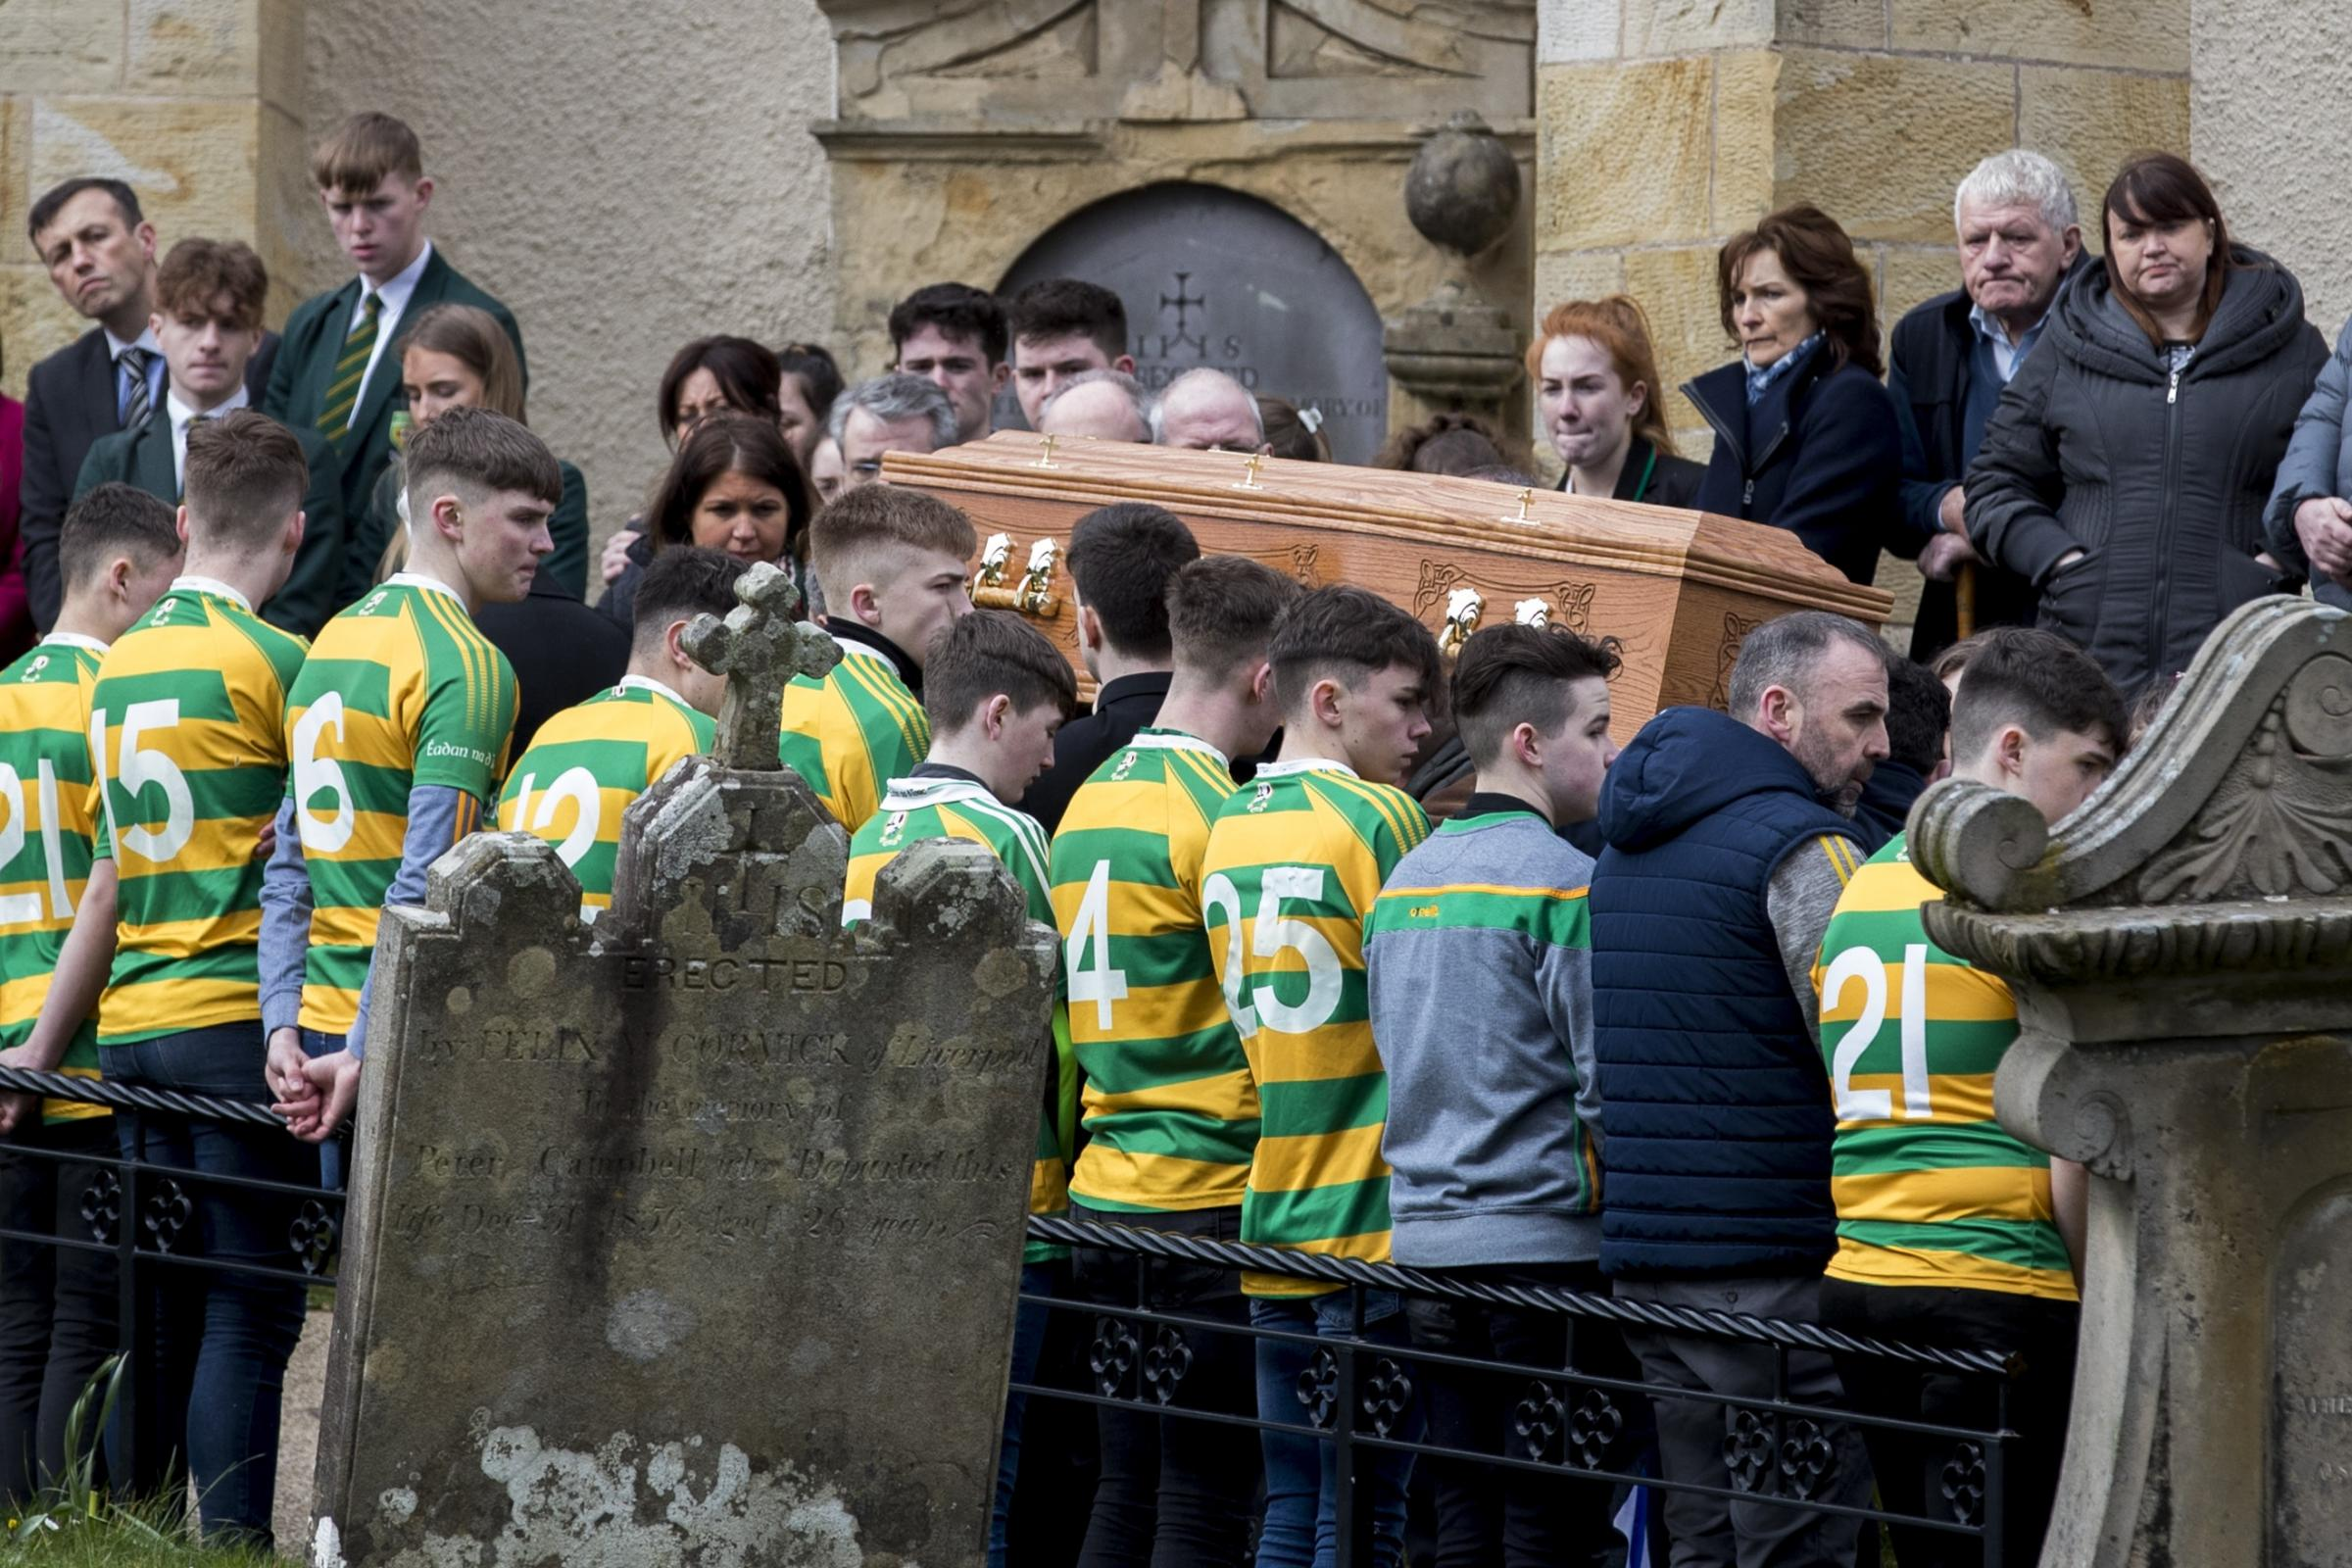 Teammates at the funeral of Connor Currie